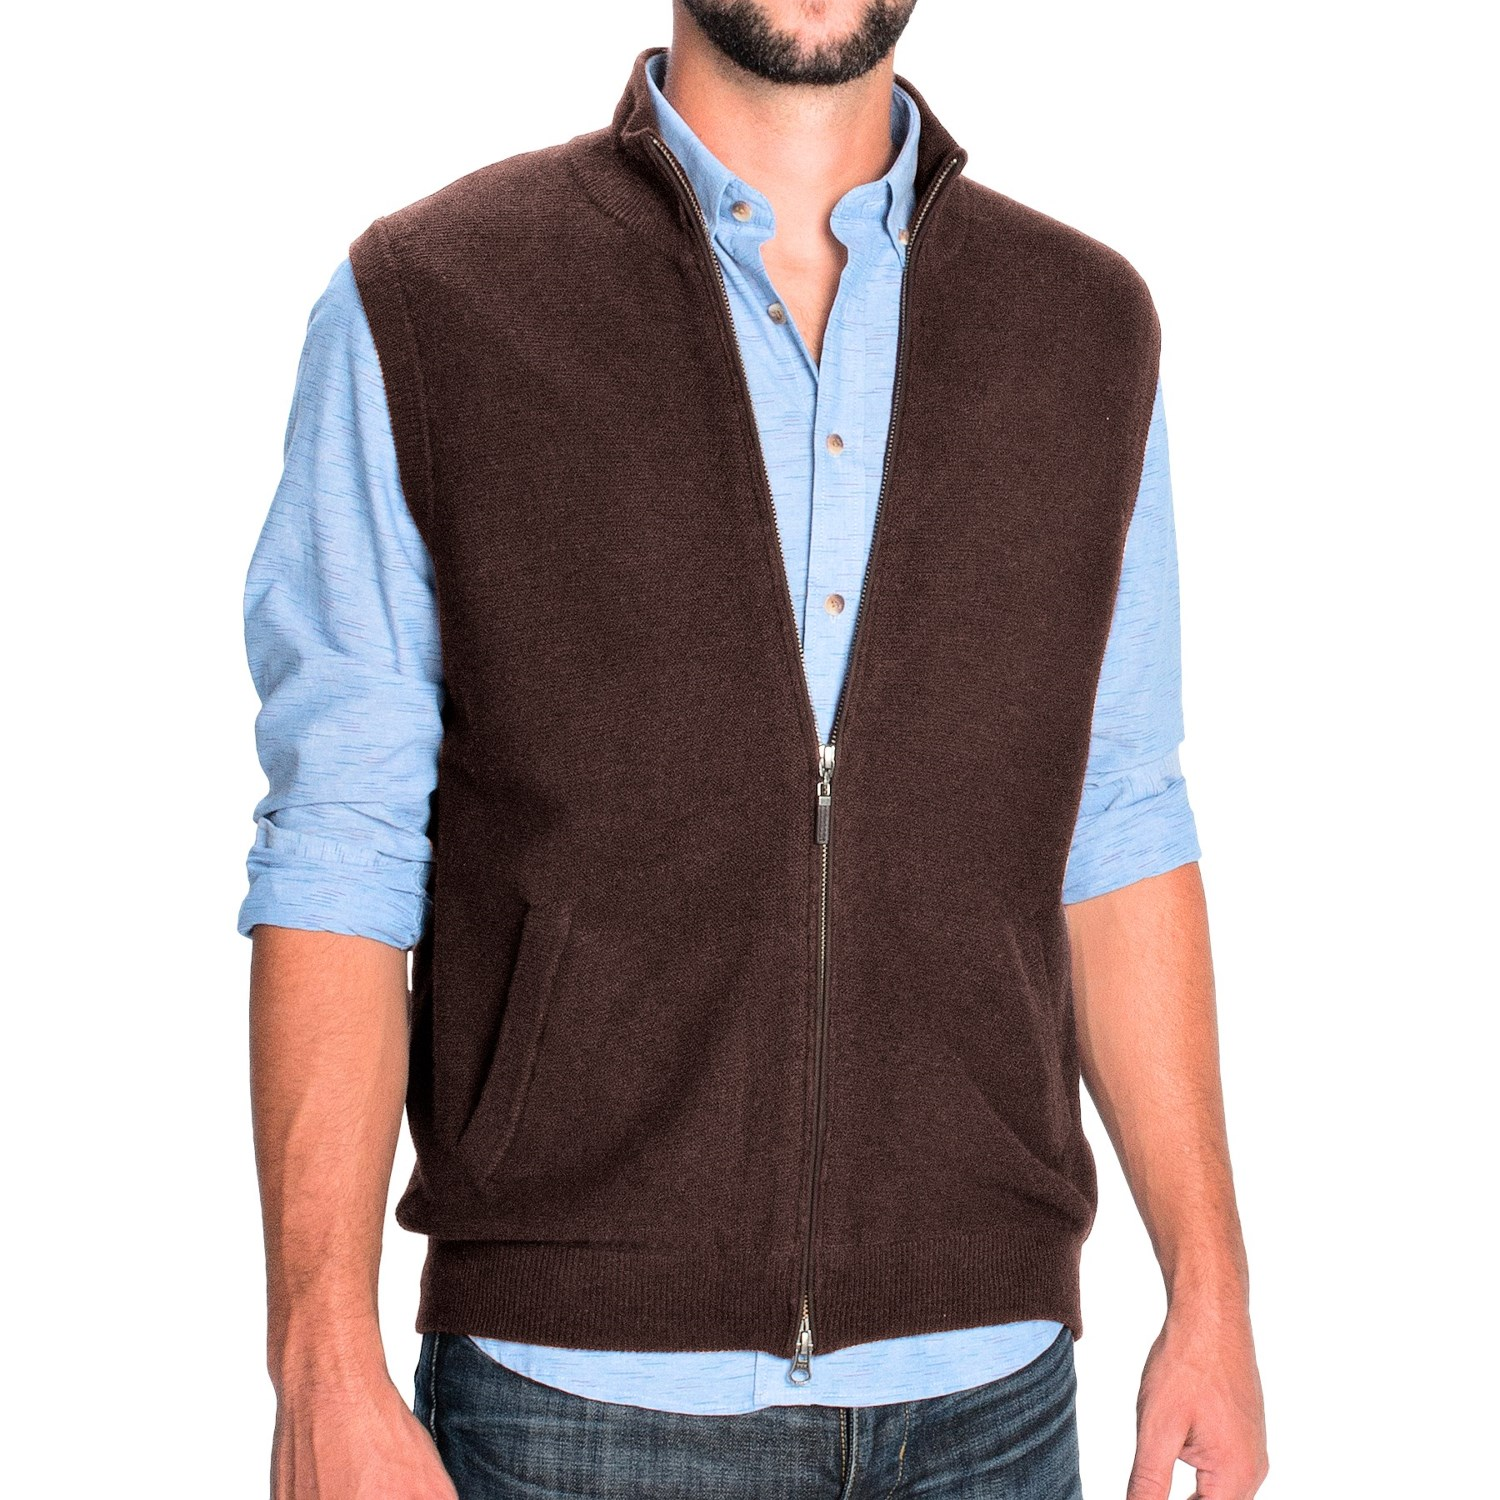 Zip Neck Sweater Vest - Cashmere Sweater England